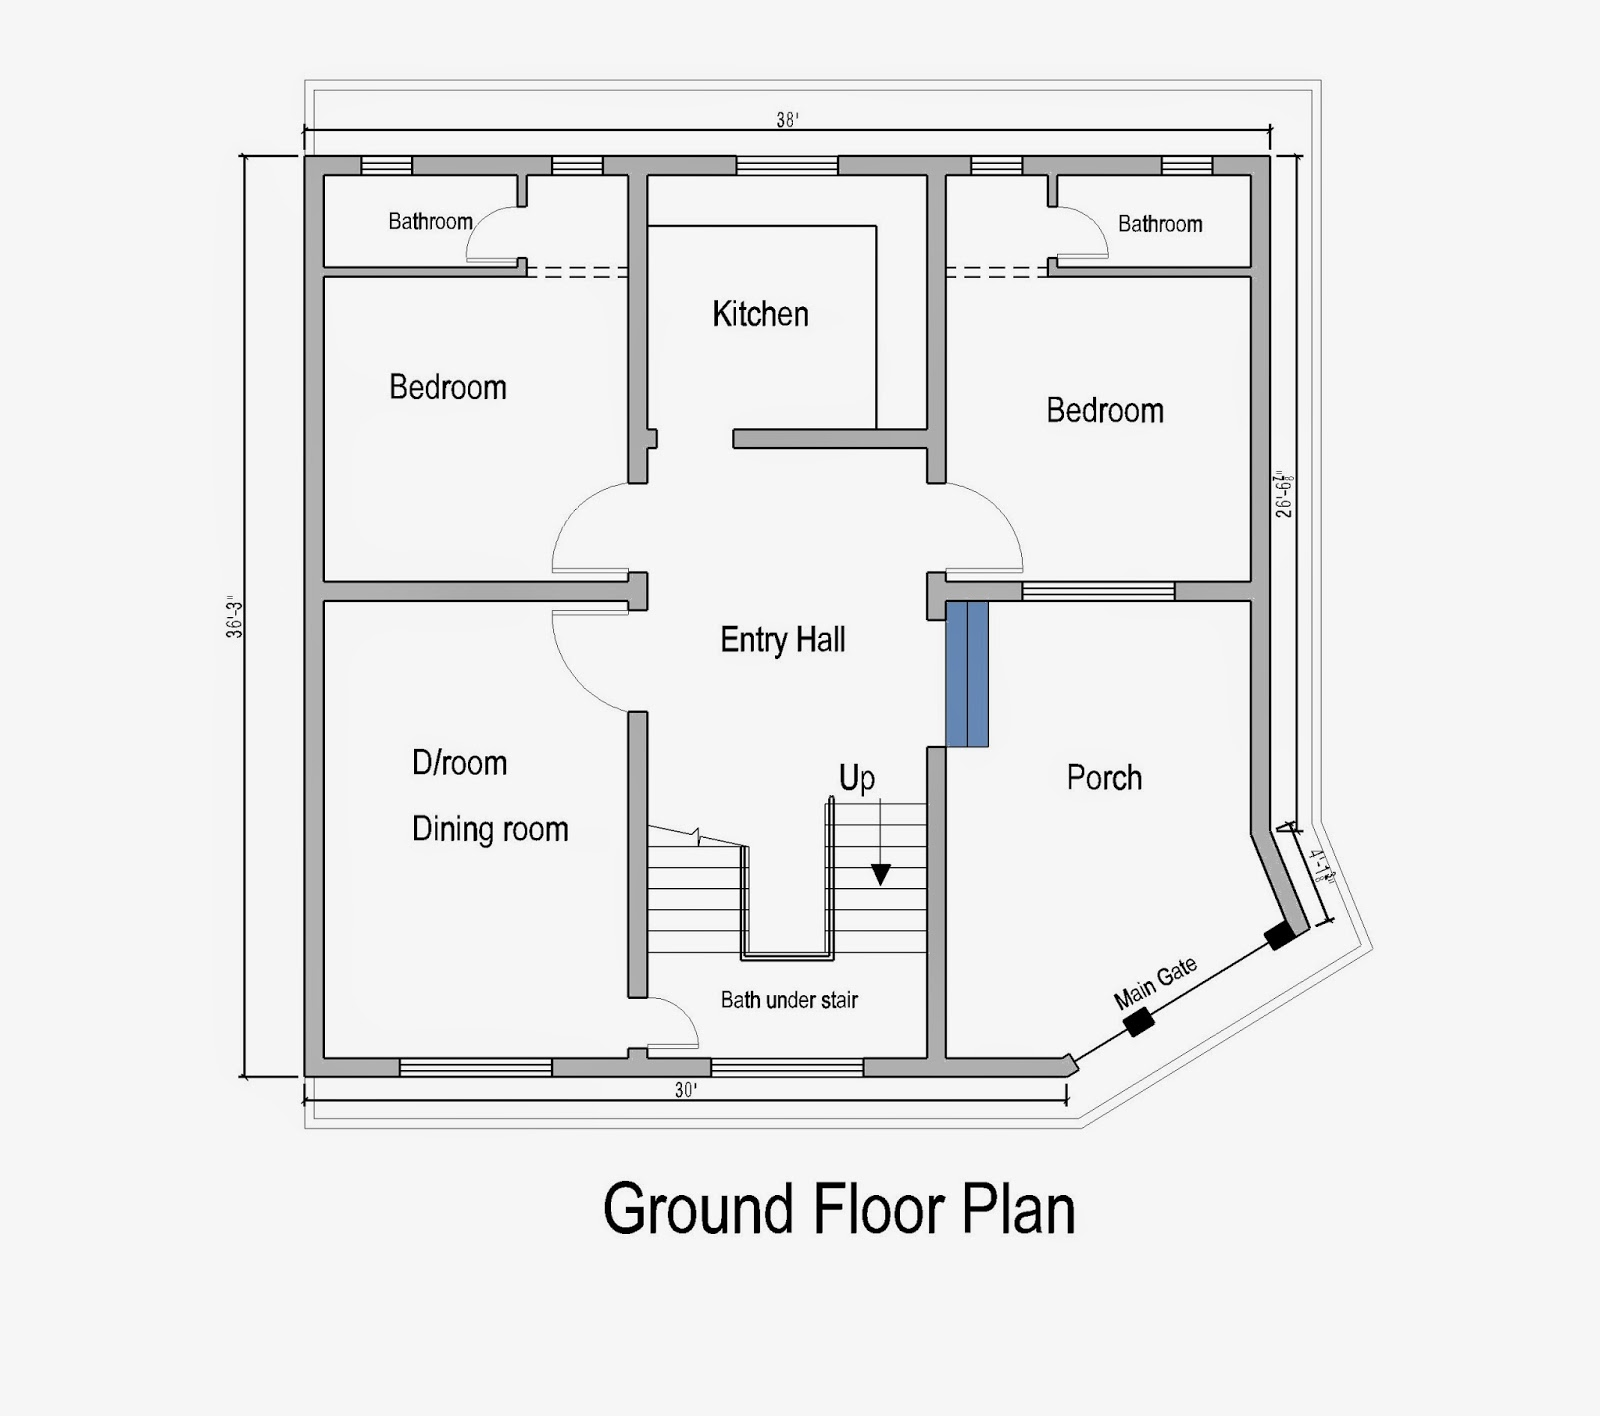 Home plans in pakistan home decor architect designer for Home floor plan designer